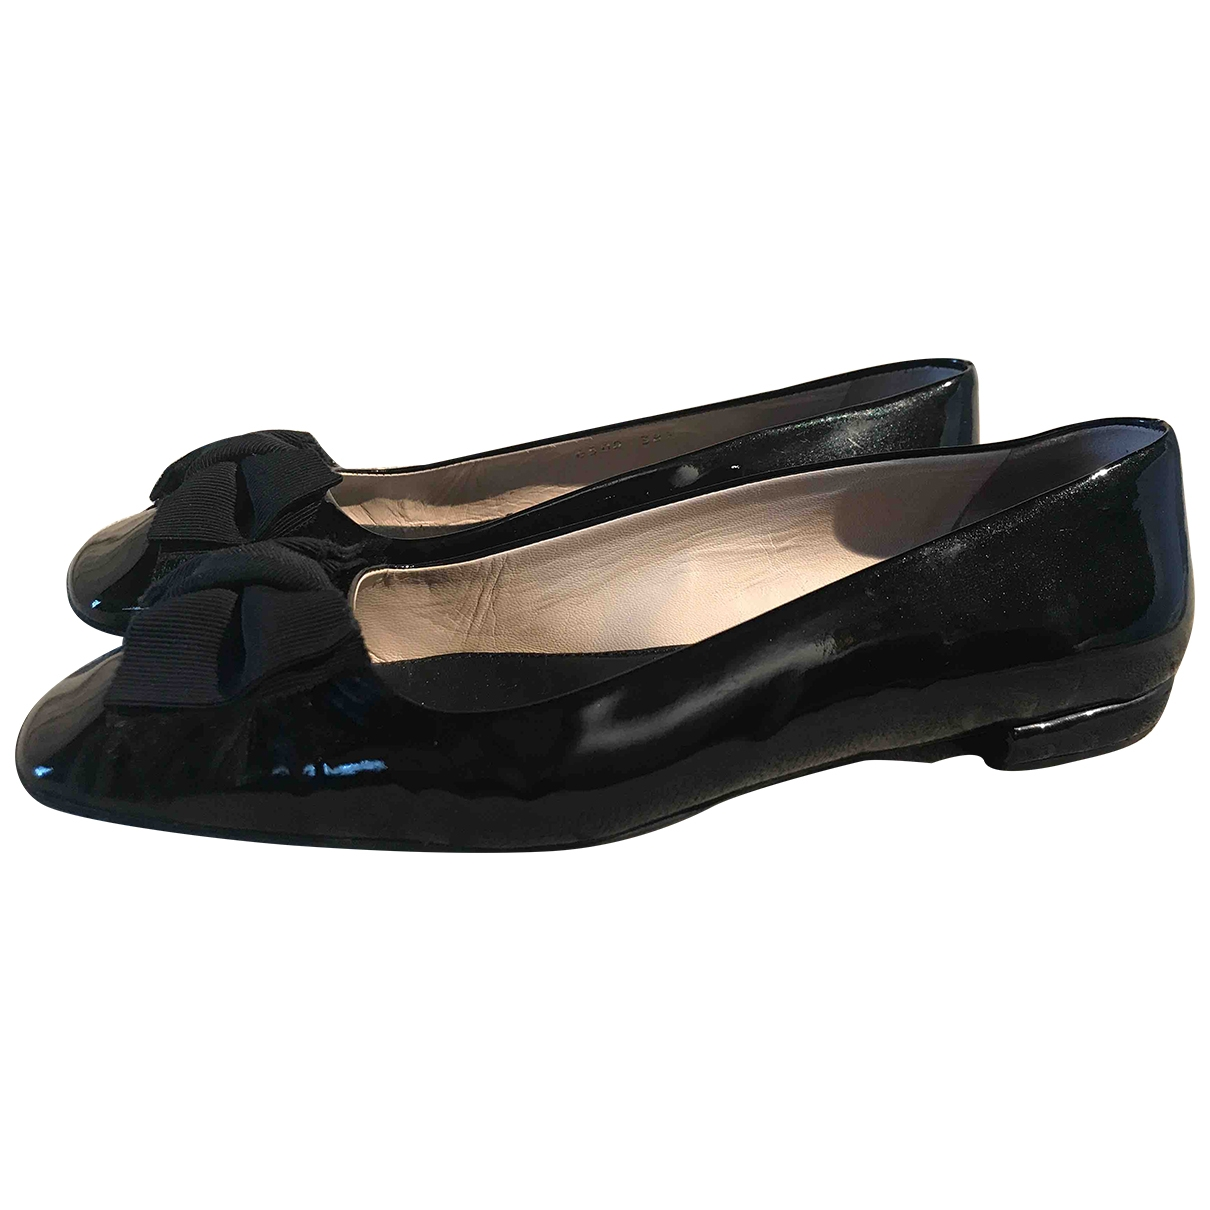 Prada \N Black Patent leather Ballet flats for Women 38.5 EU